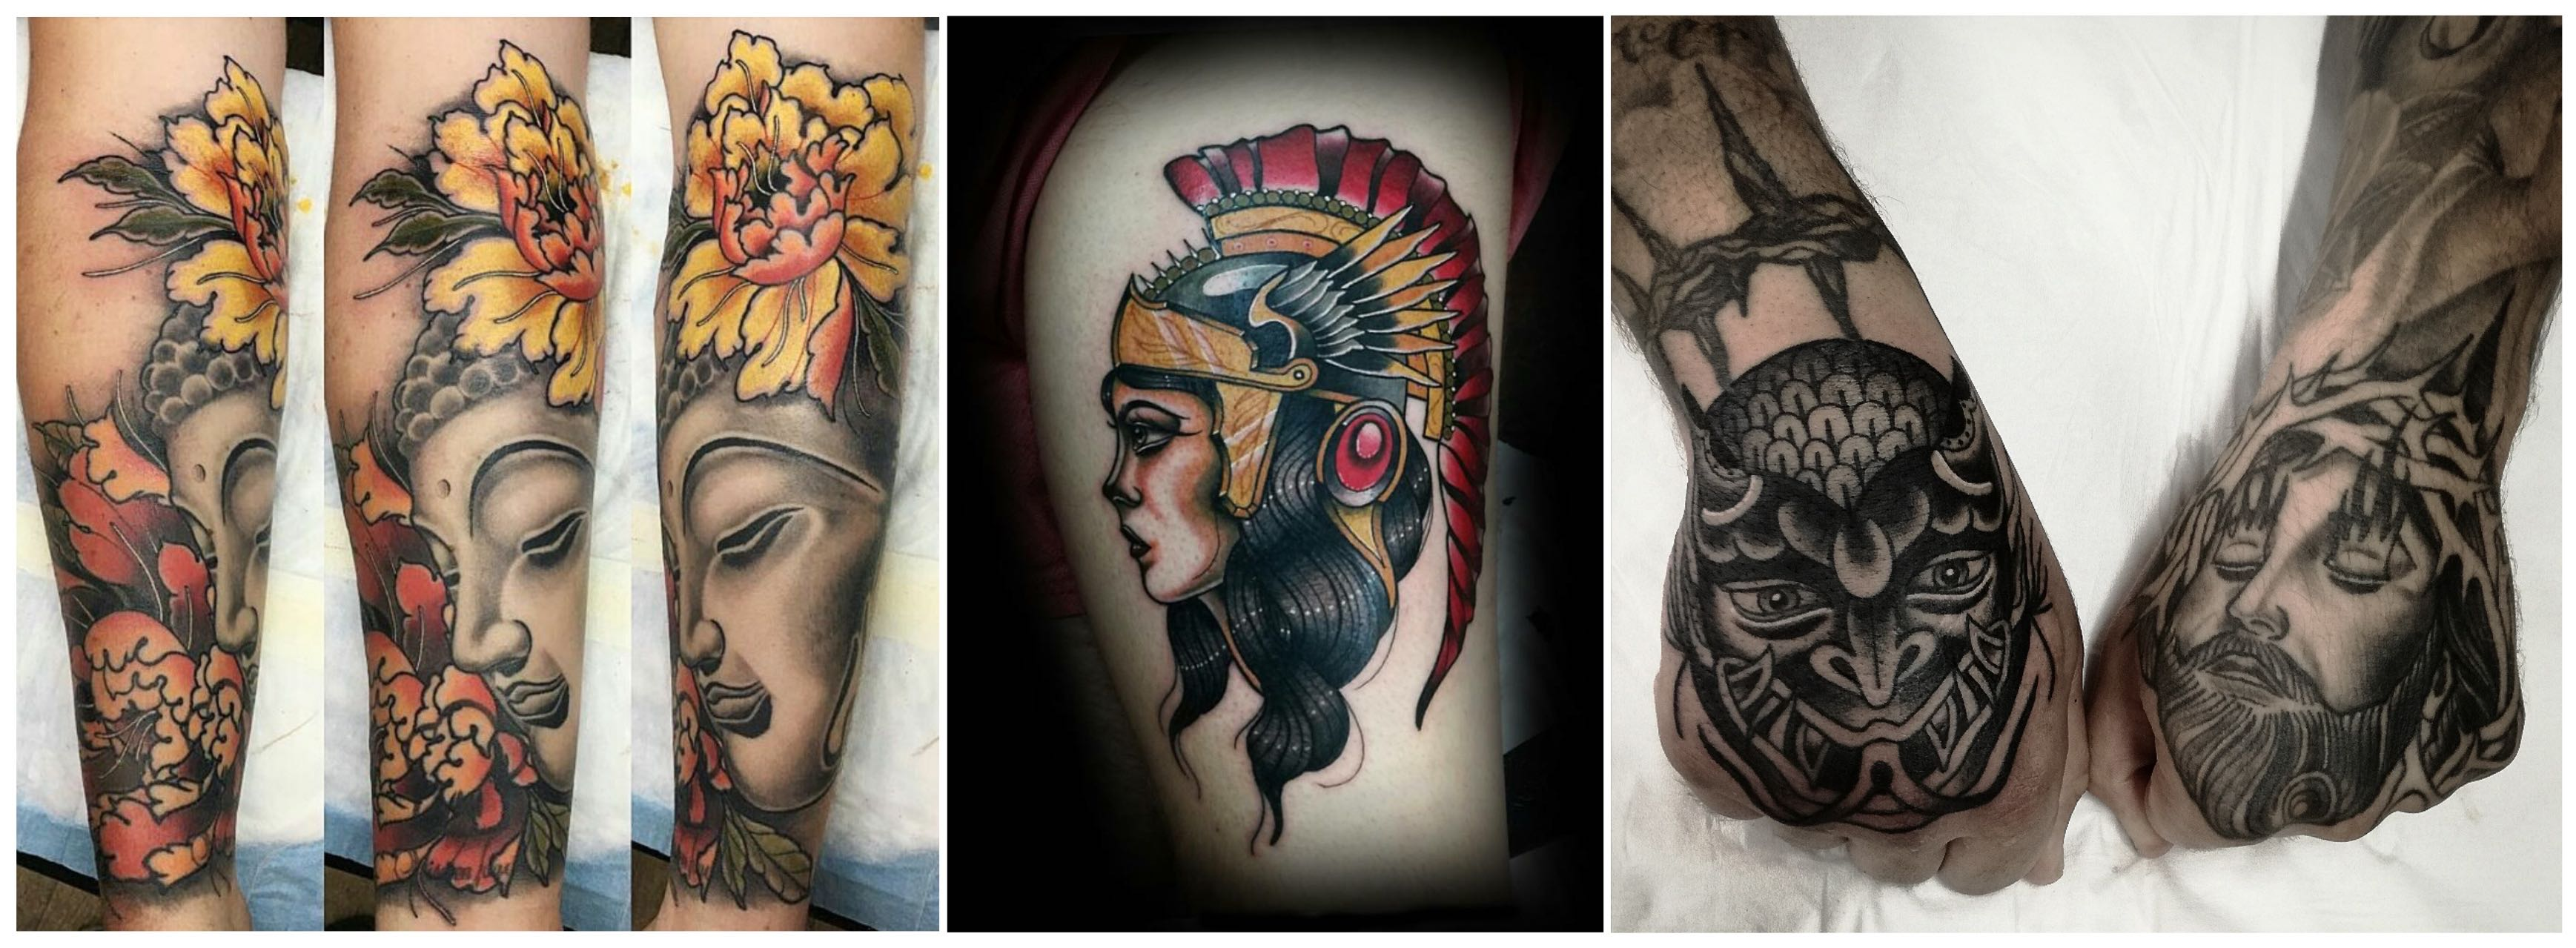 A selection of tattoos by artist Phillip Wells